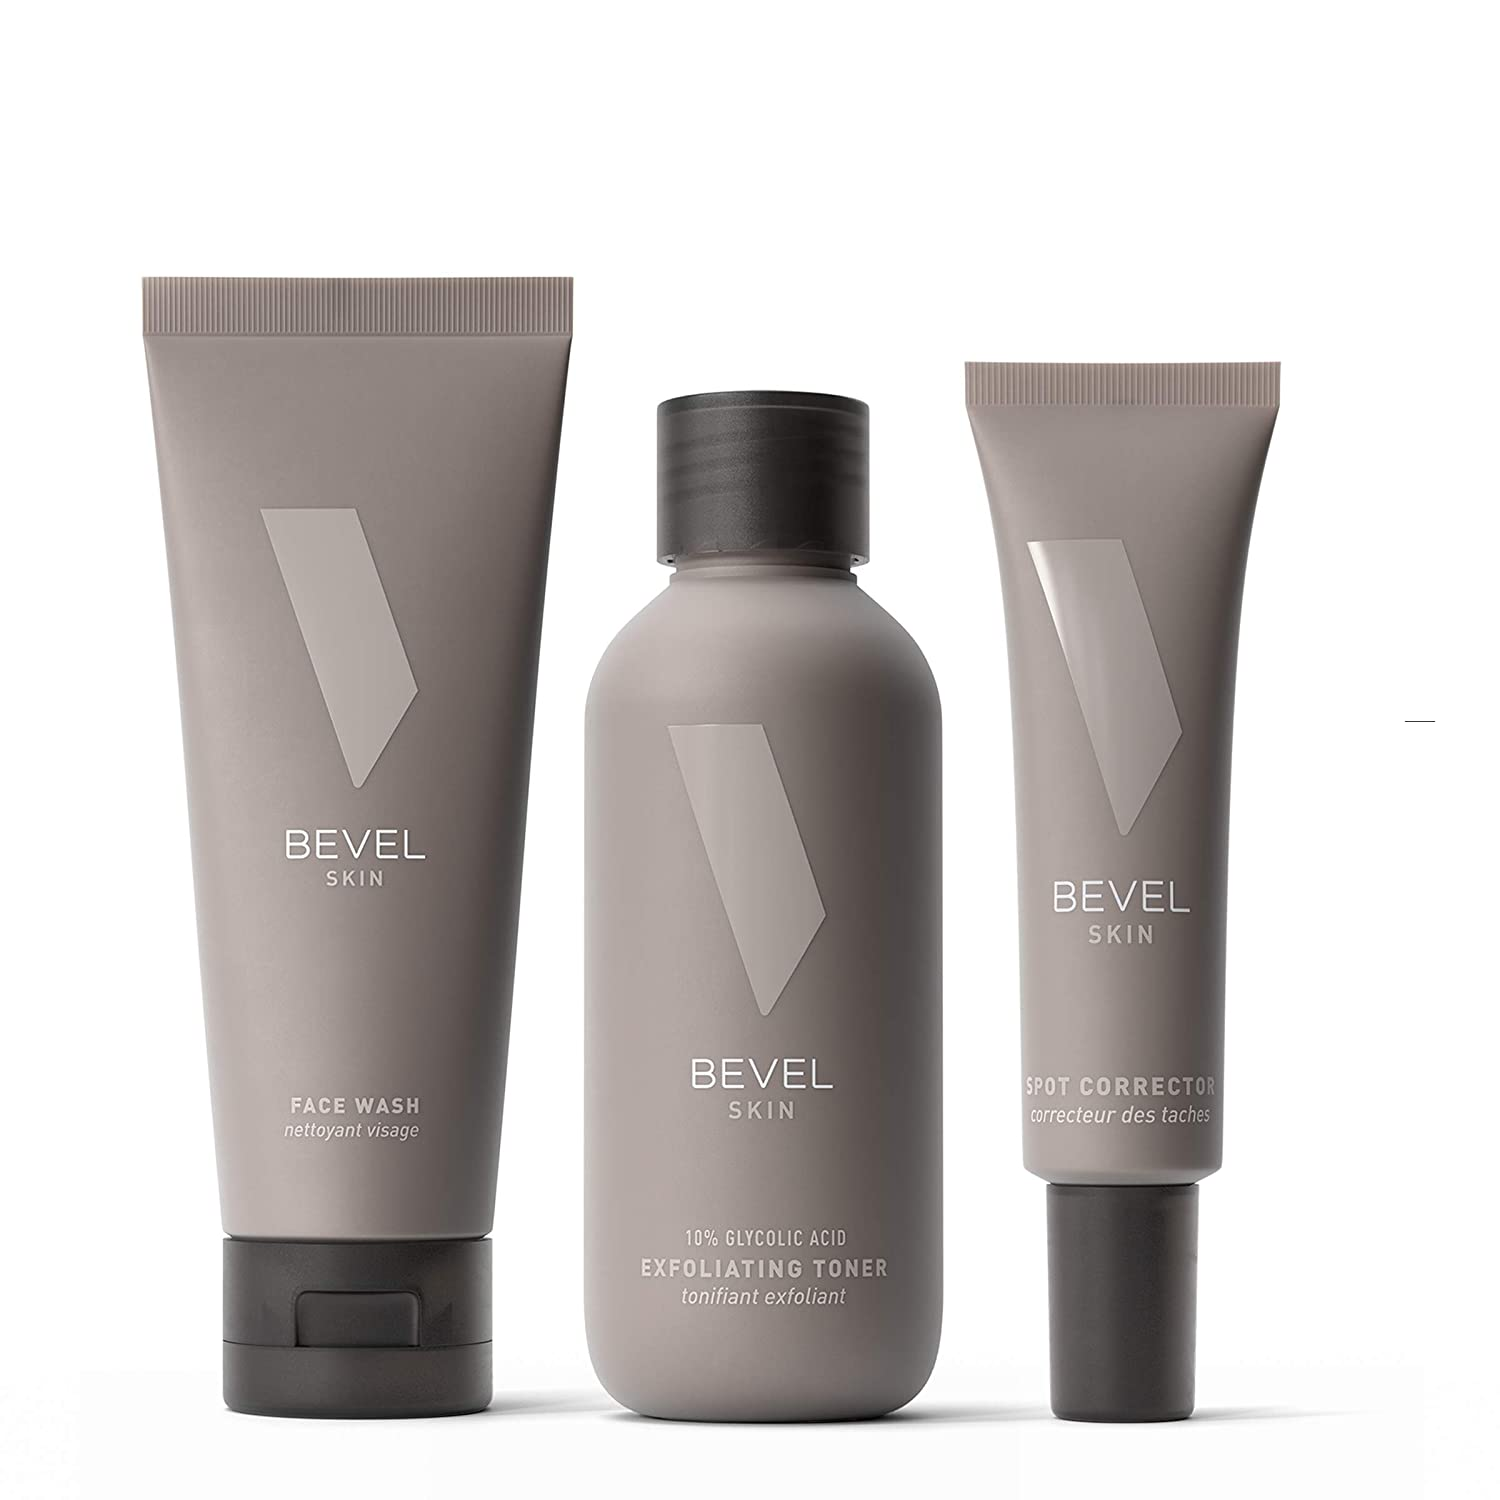 Skin Care Set for Bumps & Ingrown Hair by Bevel - Shave & Skin Rescue Kit Includes Face Wash with Tea Tree Oil, Exfoliating Toner, and Spot Corrector to Treat Blemishes, Bumps, and Discoloration